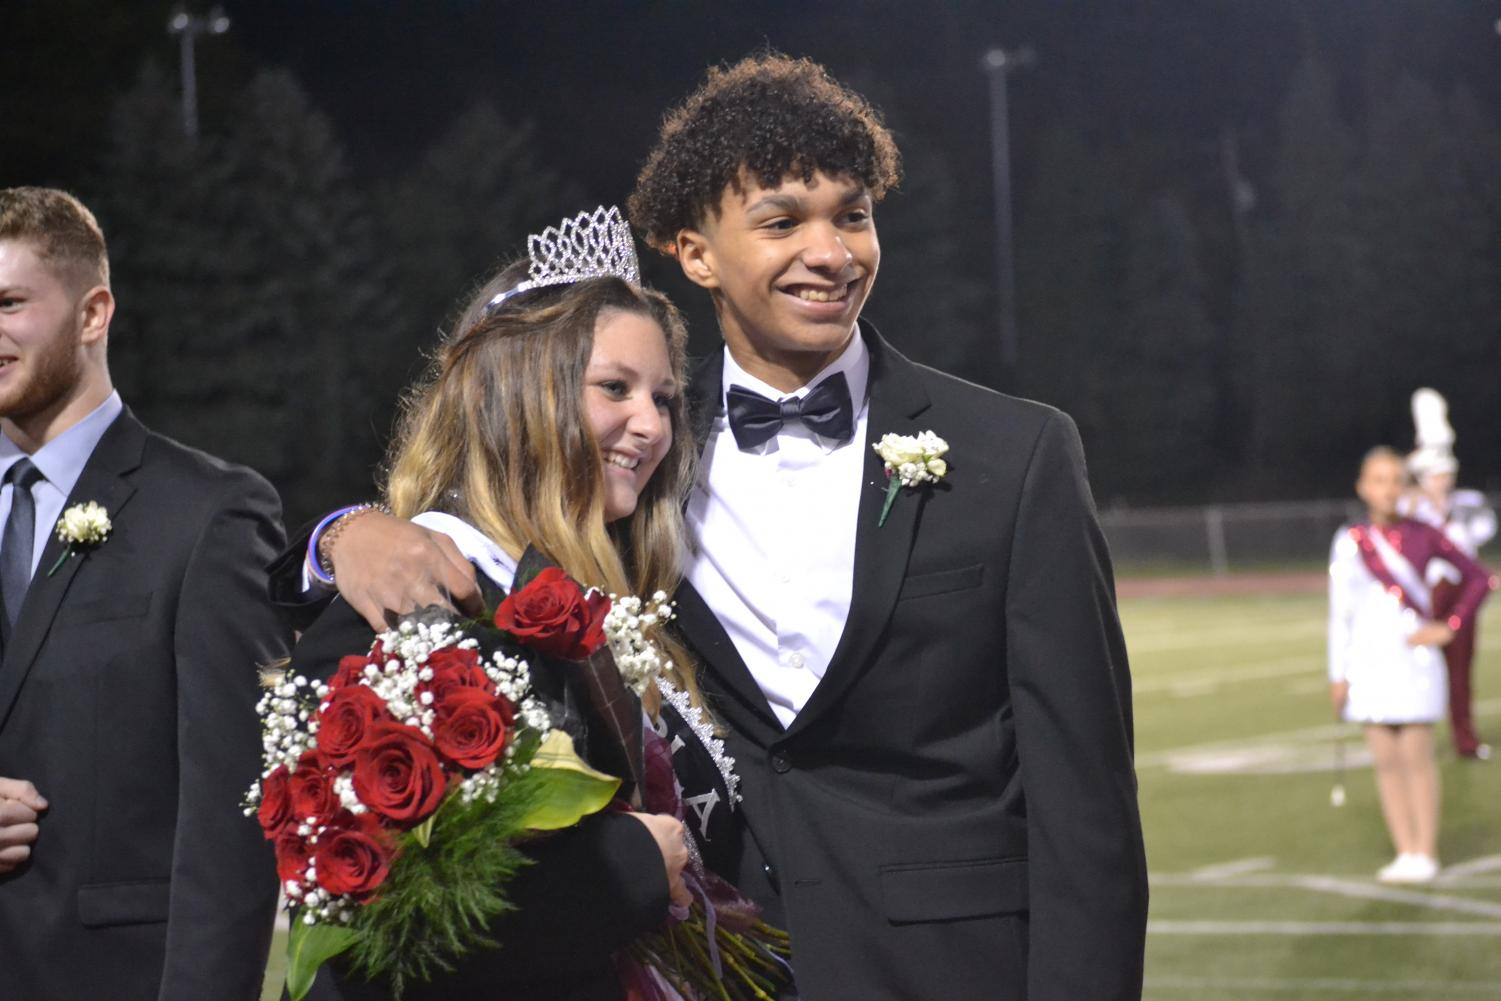 Kassidy Duclos and her escort, KJ Futrell, smile after winning Homecoming Queen. Duclos represented FBLA.